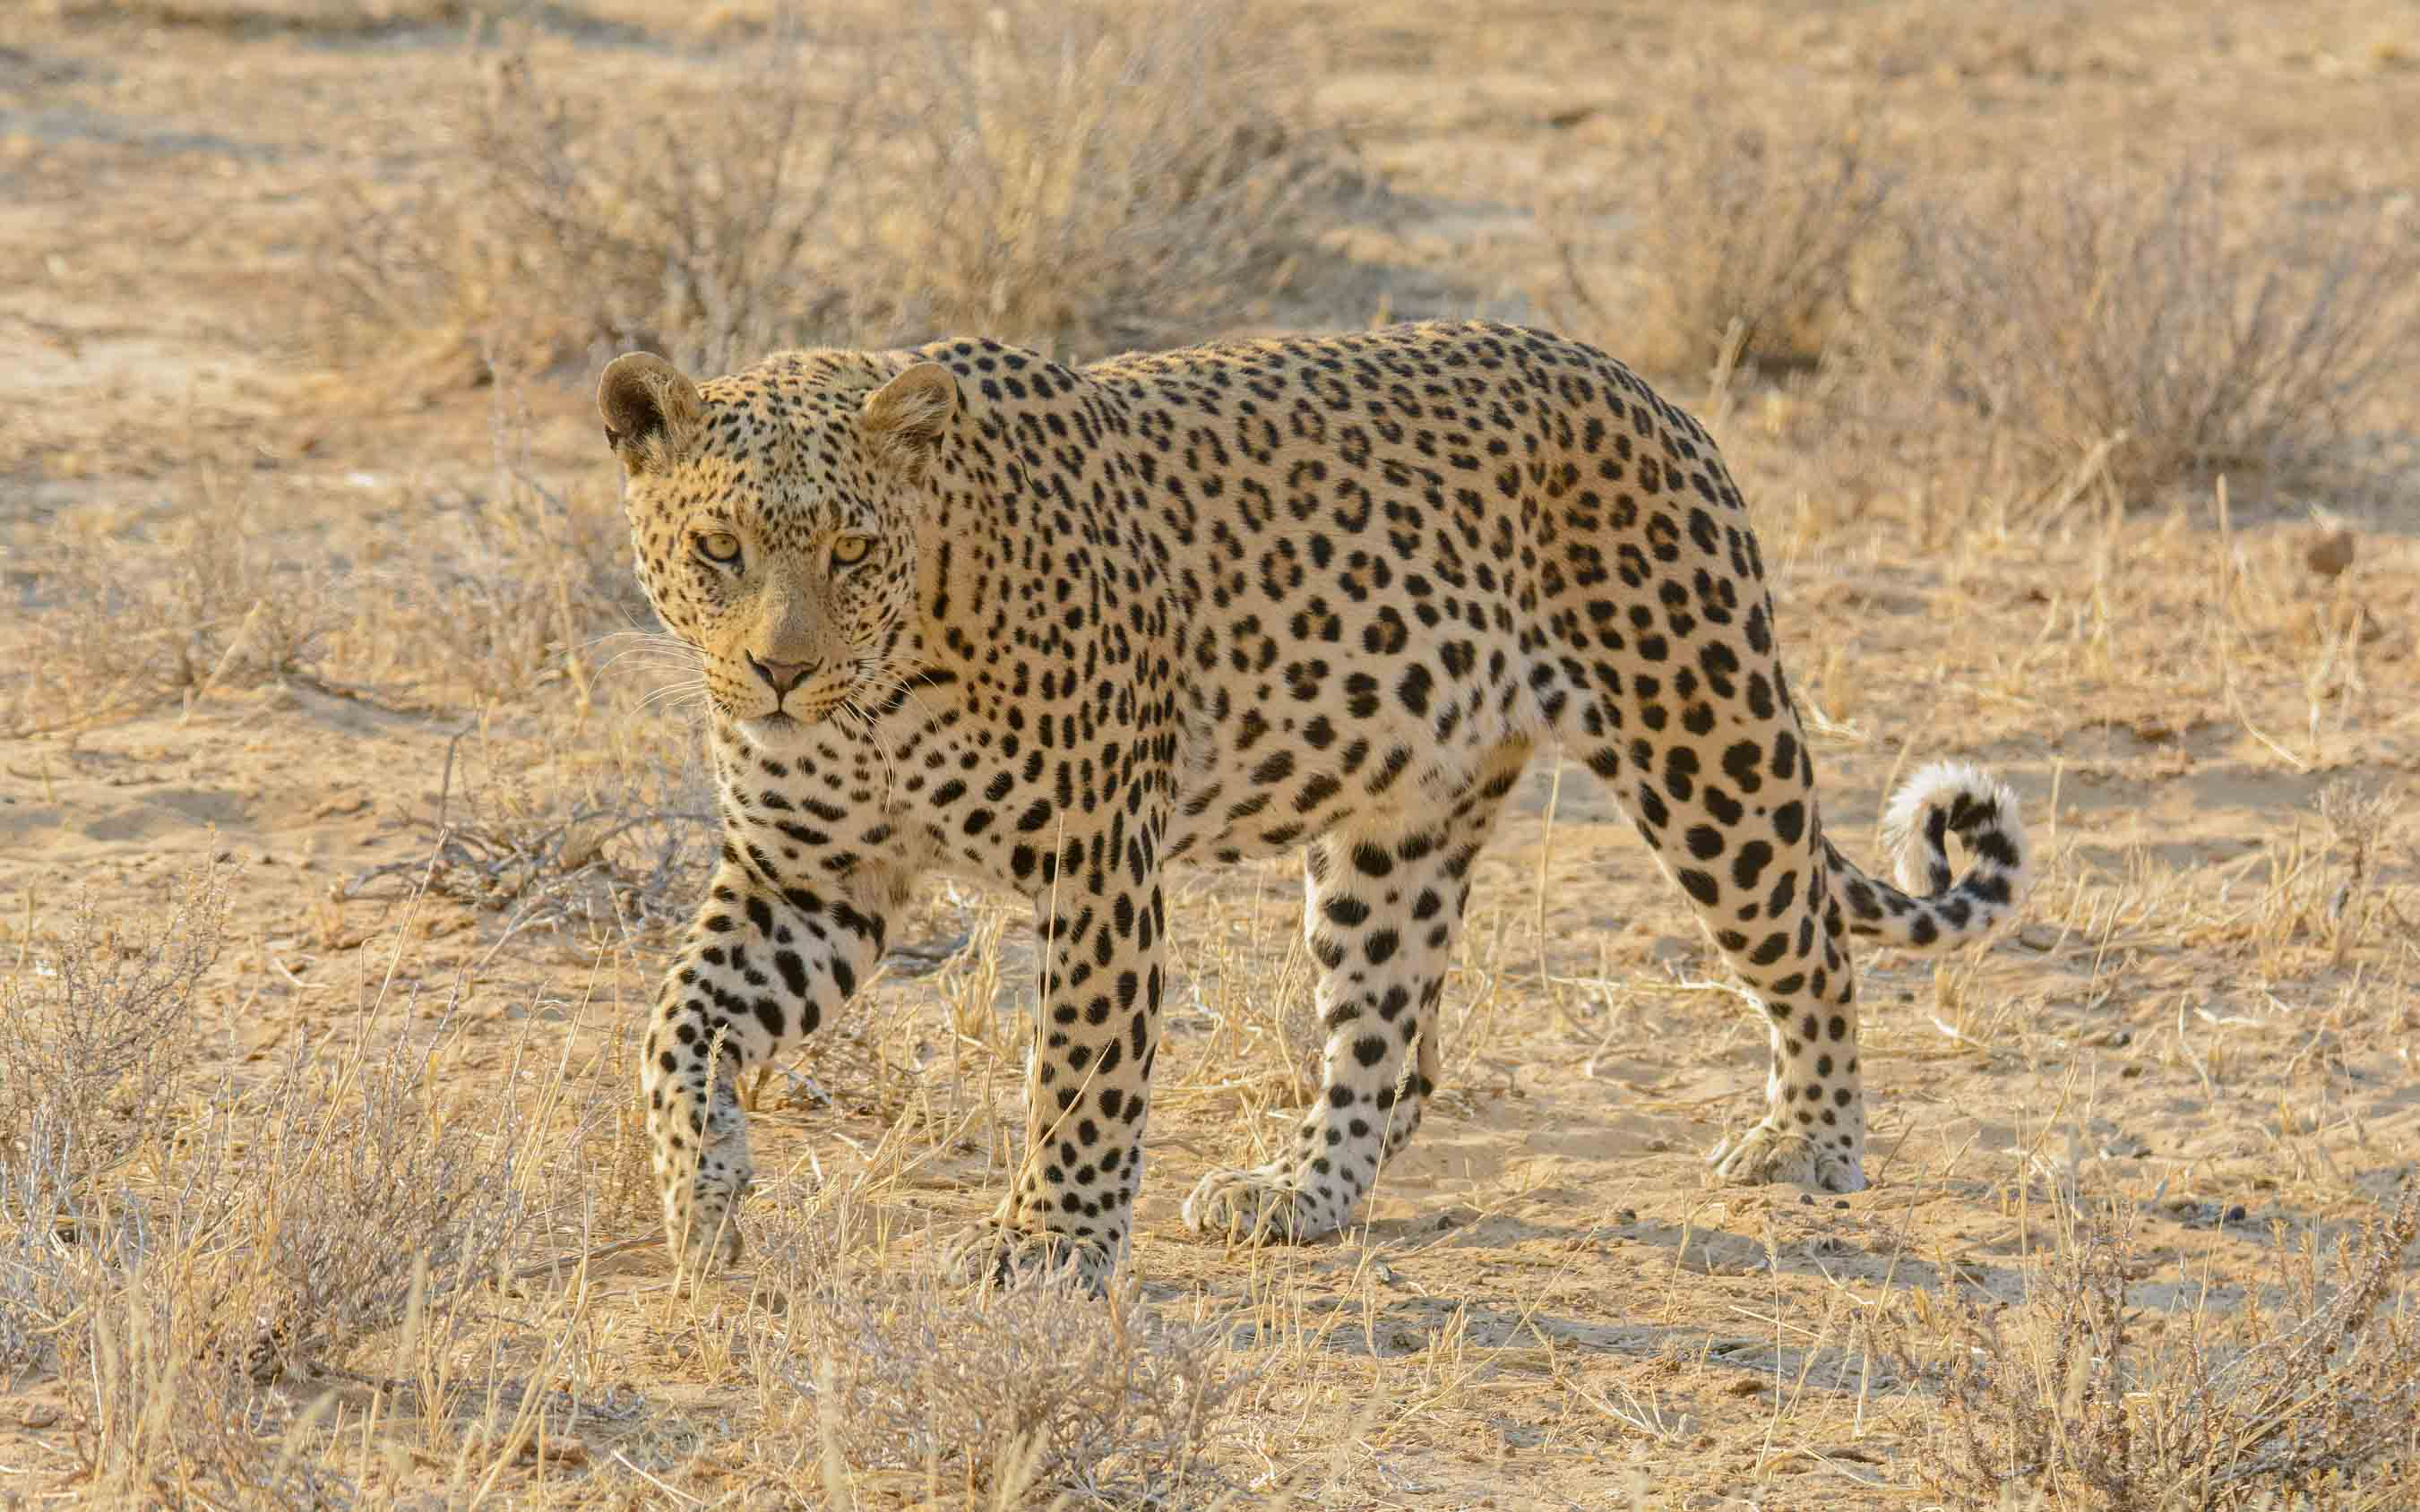 Mammal and Birding Tour South Africa: The Kalahari April 2021